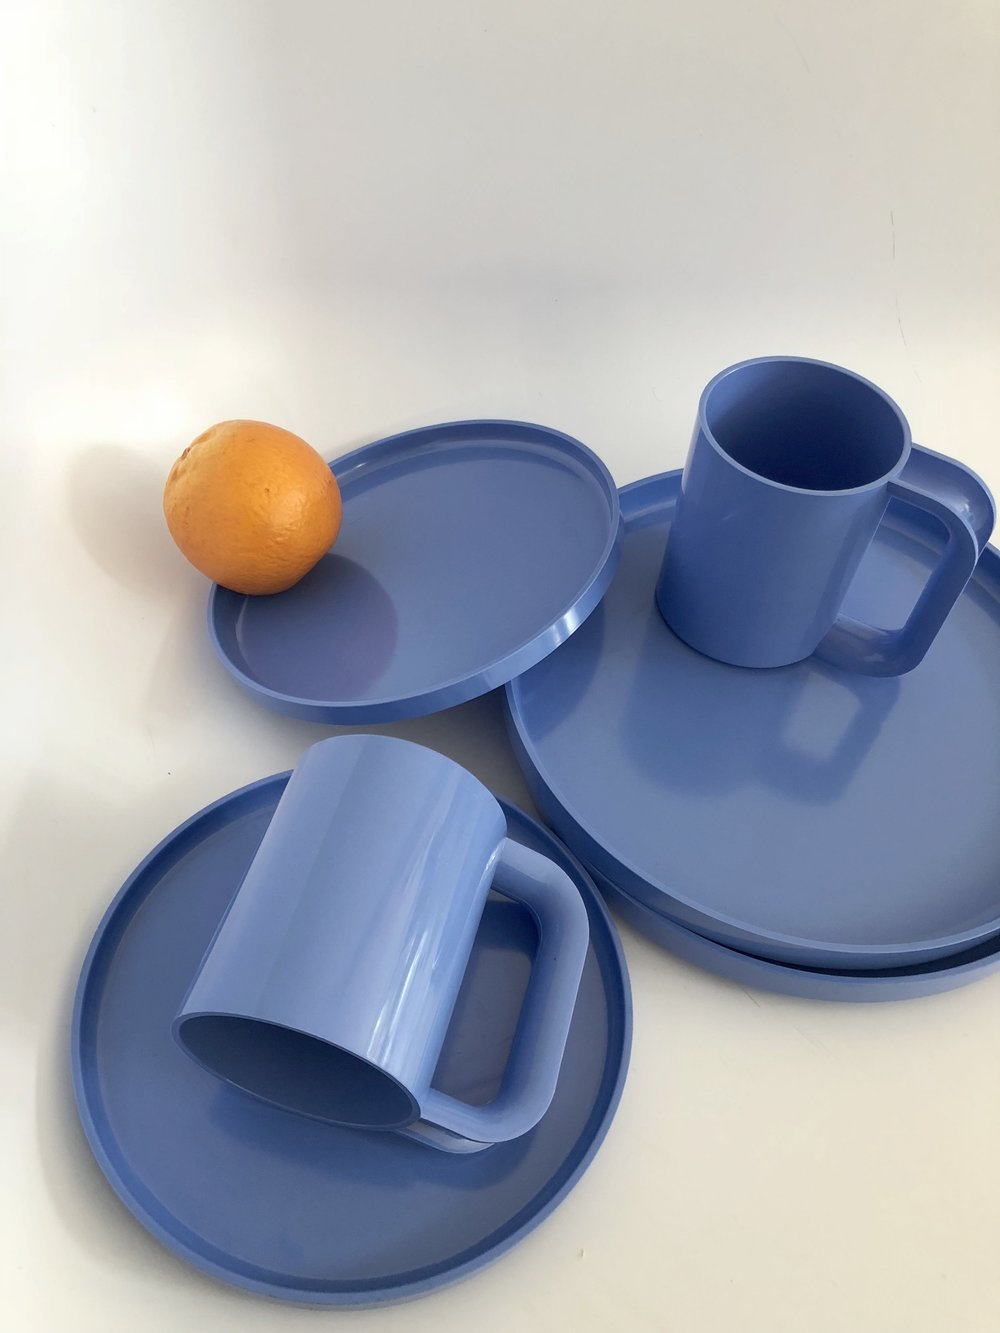 Vintage Perriwinkle Blue Plastic Heller for 2 set-6 Piece Set